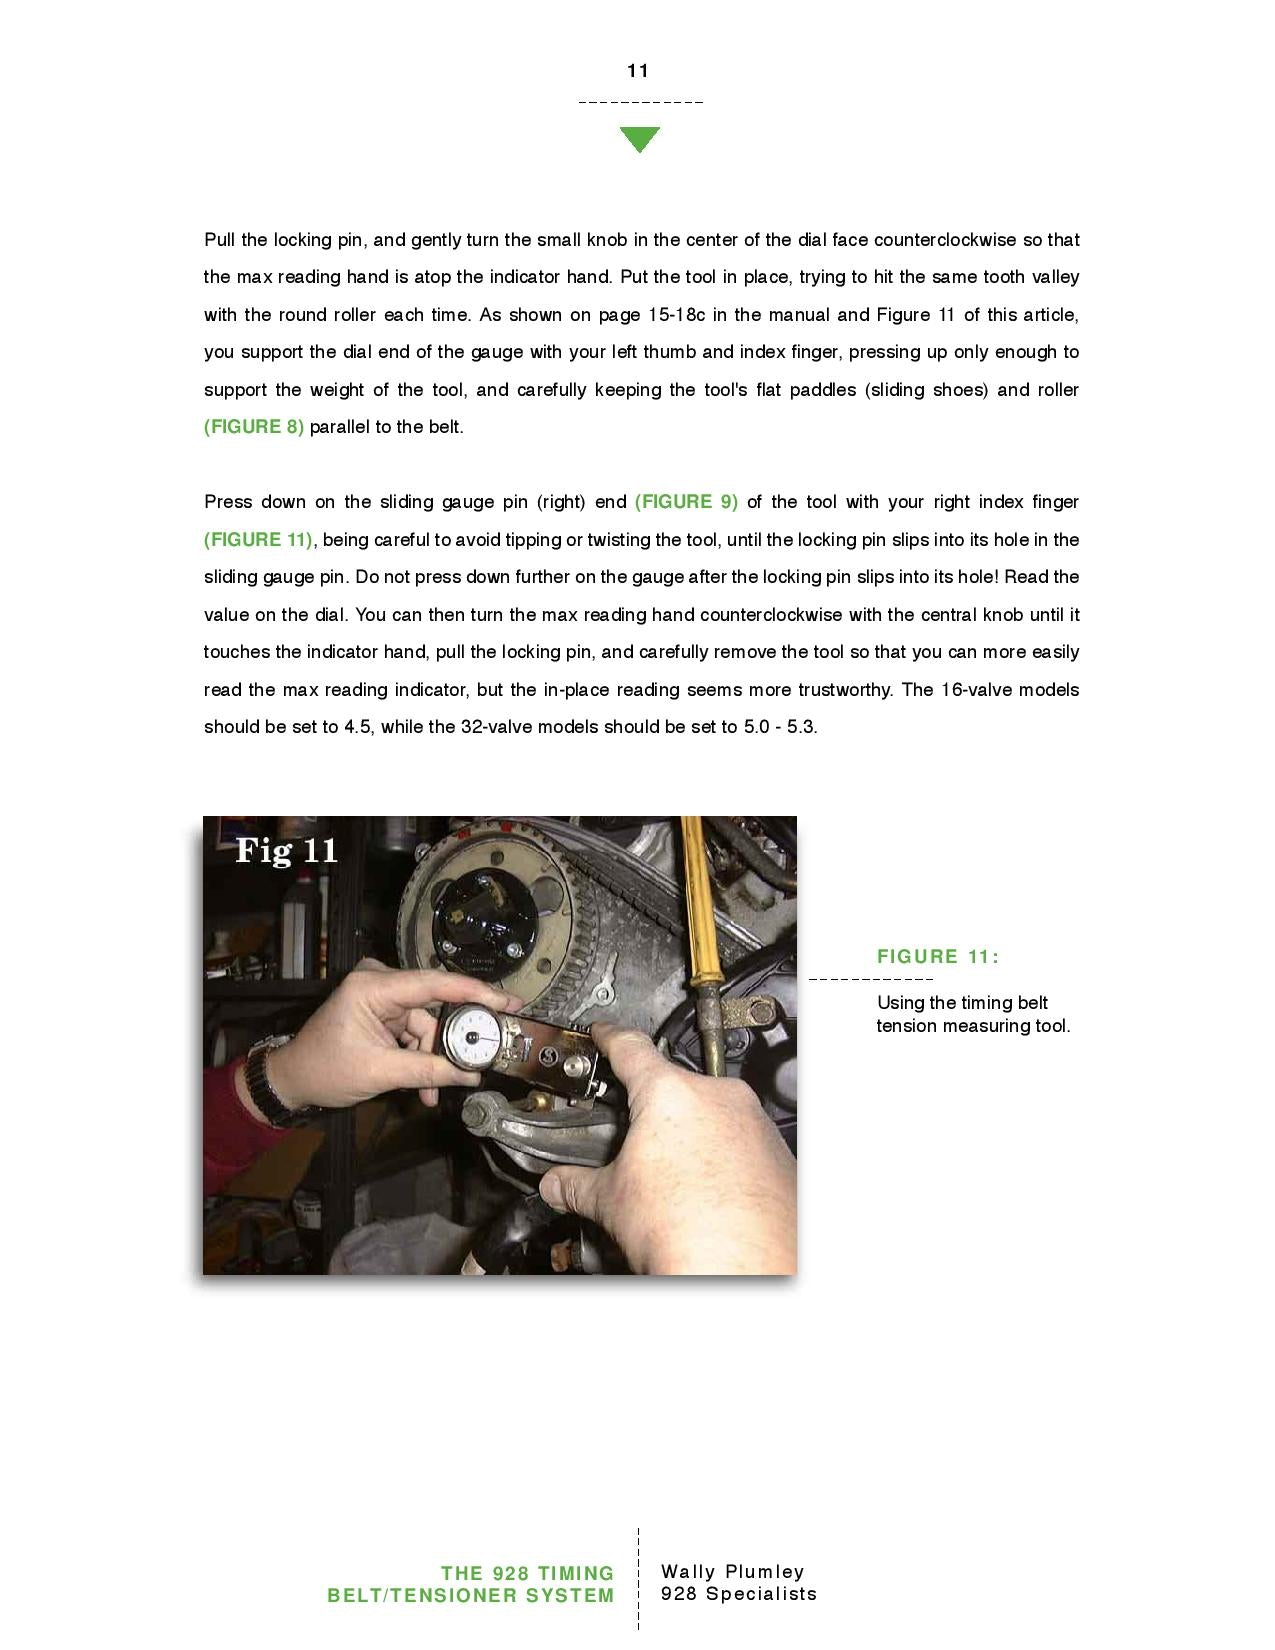 The 928 Timing Belt and Tensioner System pg11